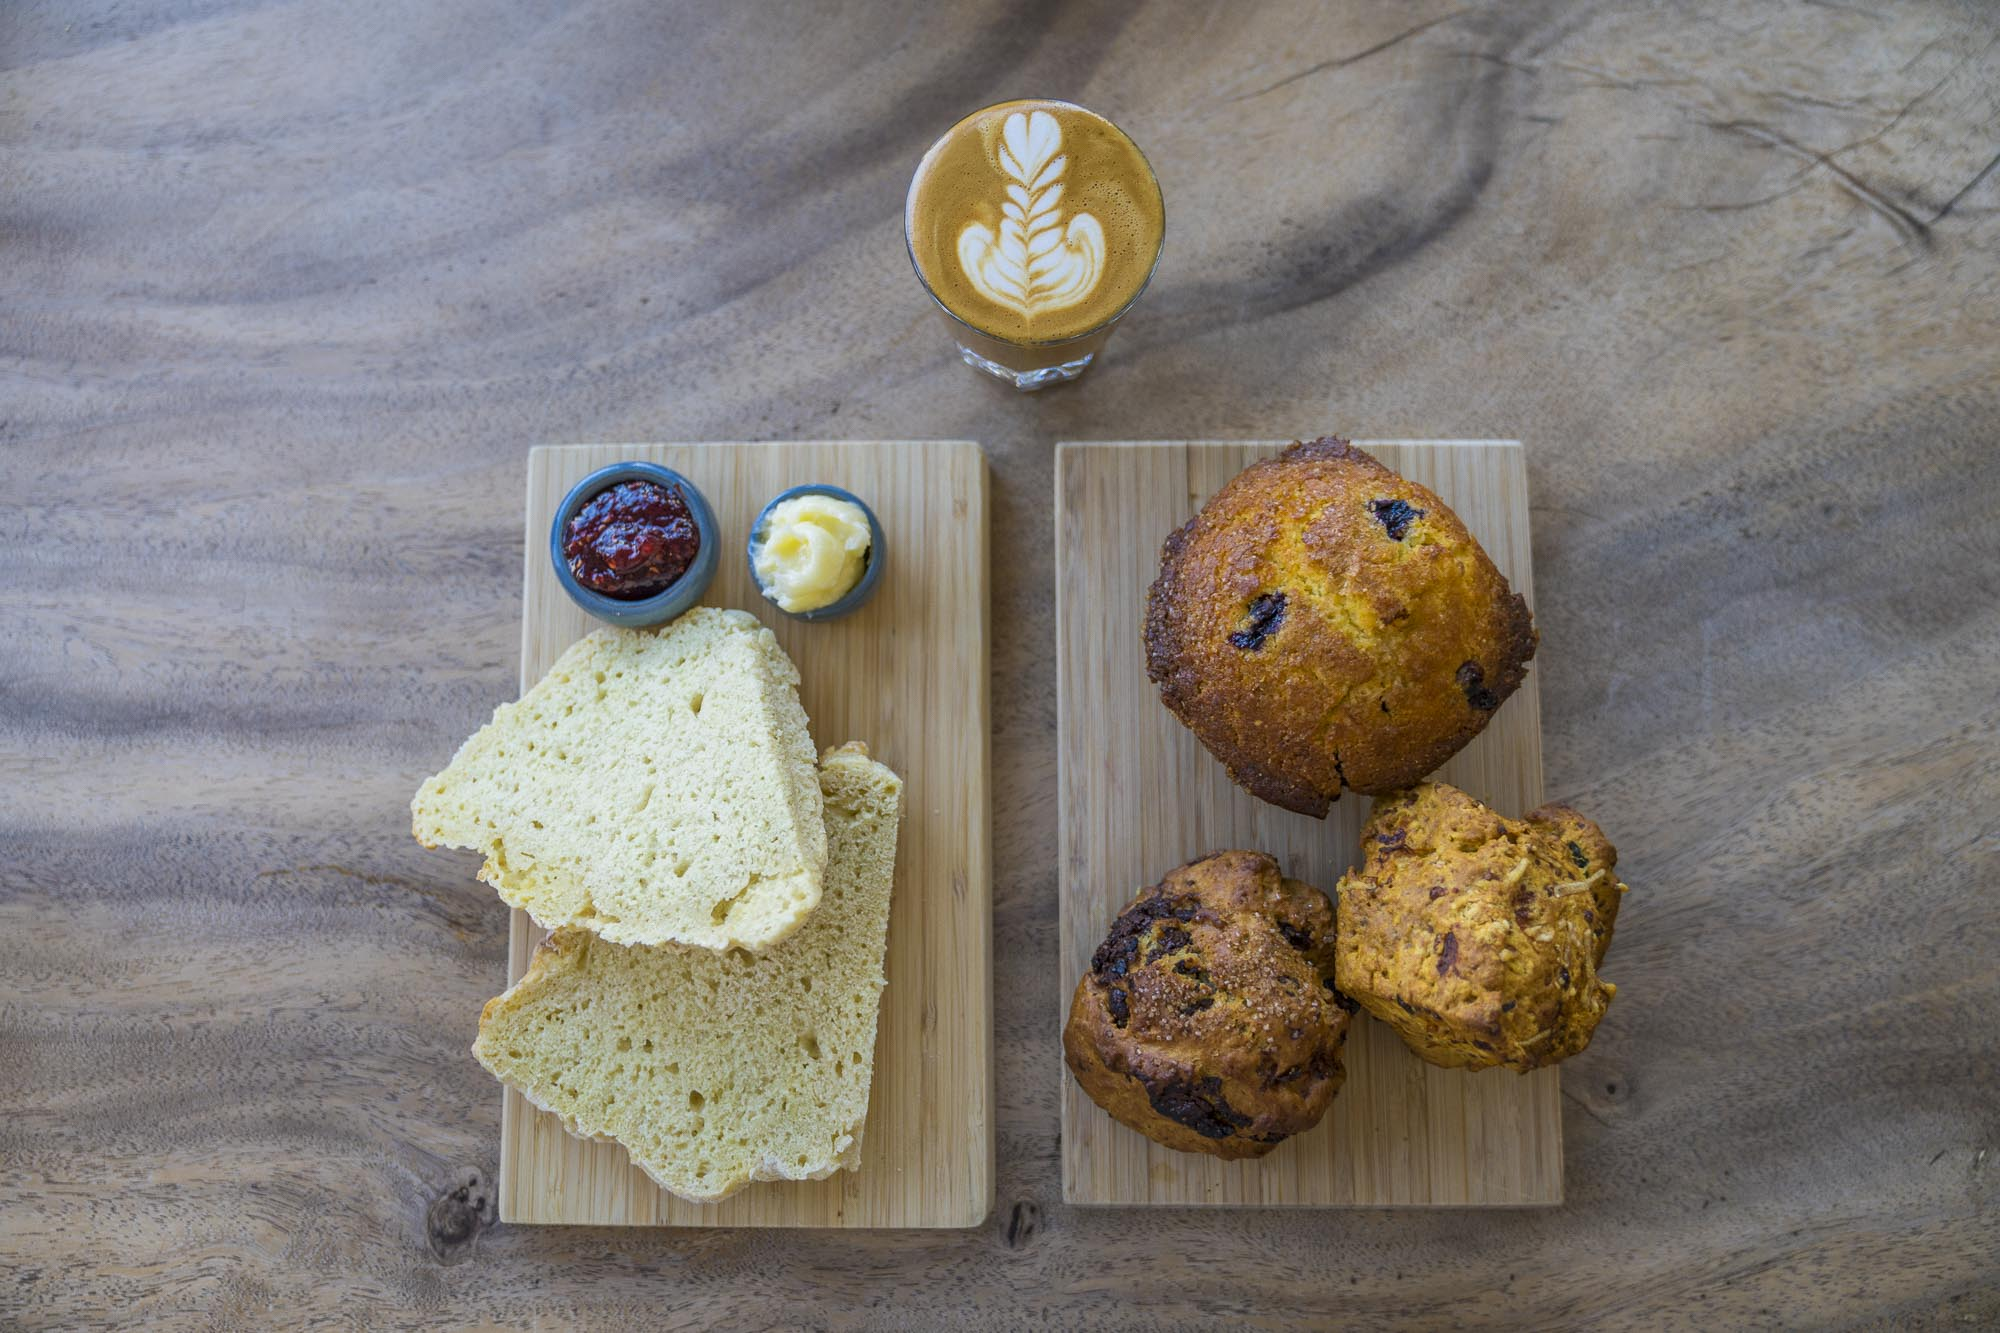 soda bread, muffins and coffee from Anytown Coffee Roasters